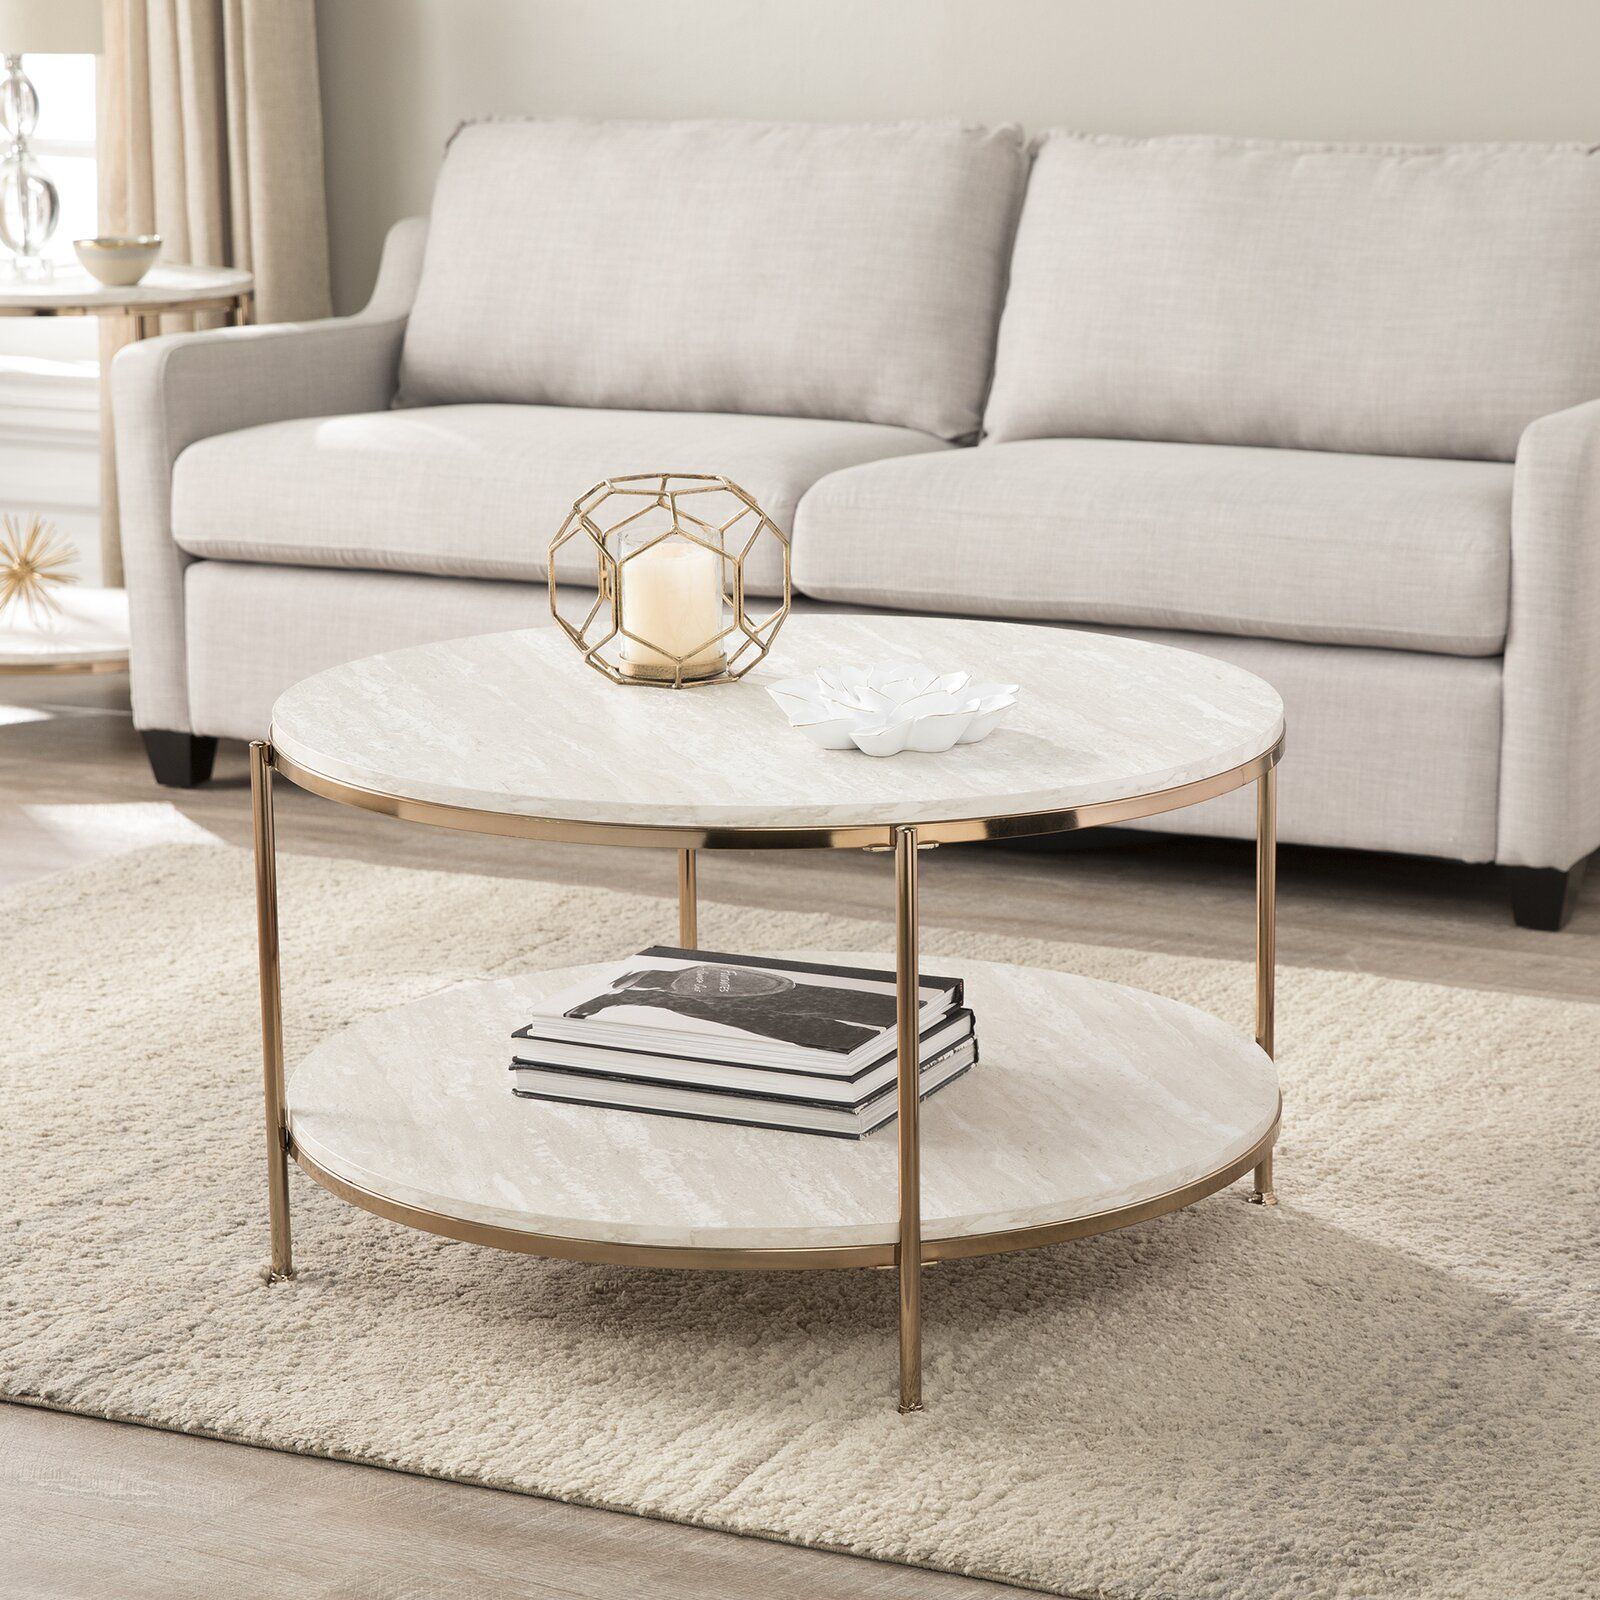 Stamper Faux Stone Coffee Table Reviews Joss Main Stone Coffee Table Coffee Table Living Room Coffee Table [ 1600 x 1600 Pixel ]